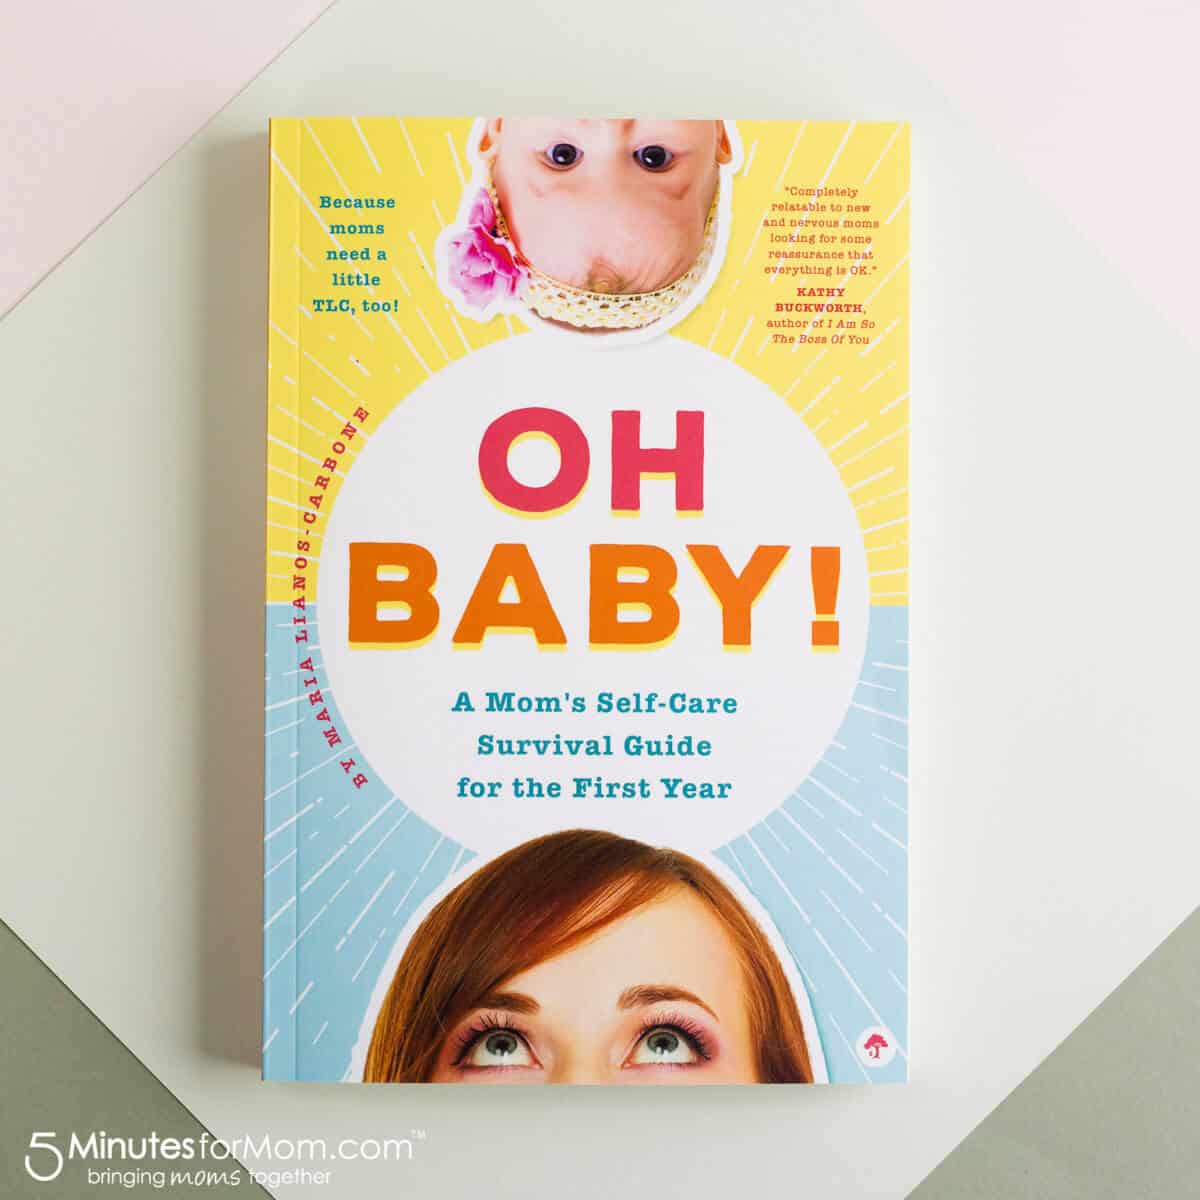 Oh Baby - A Mom's Self-Care Survival Guide for the First Year